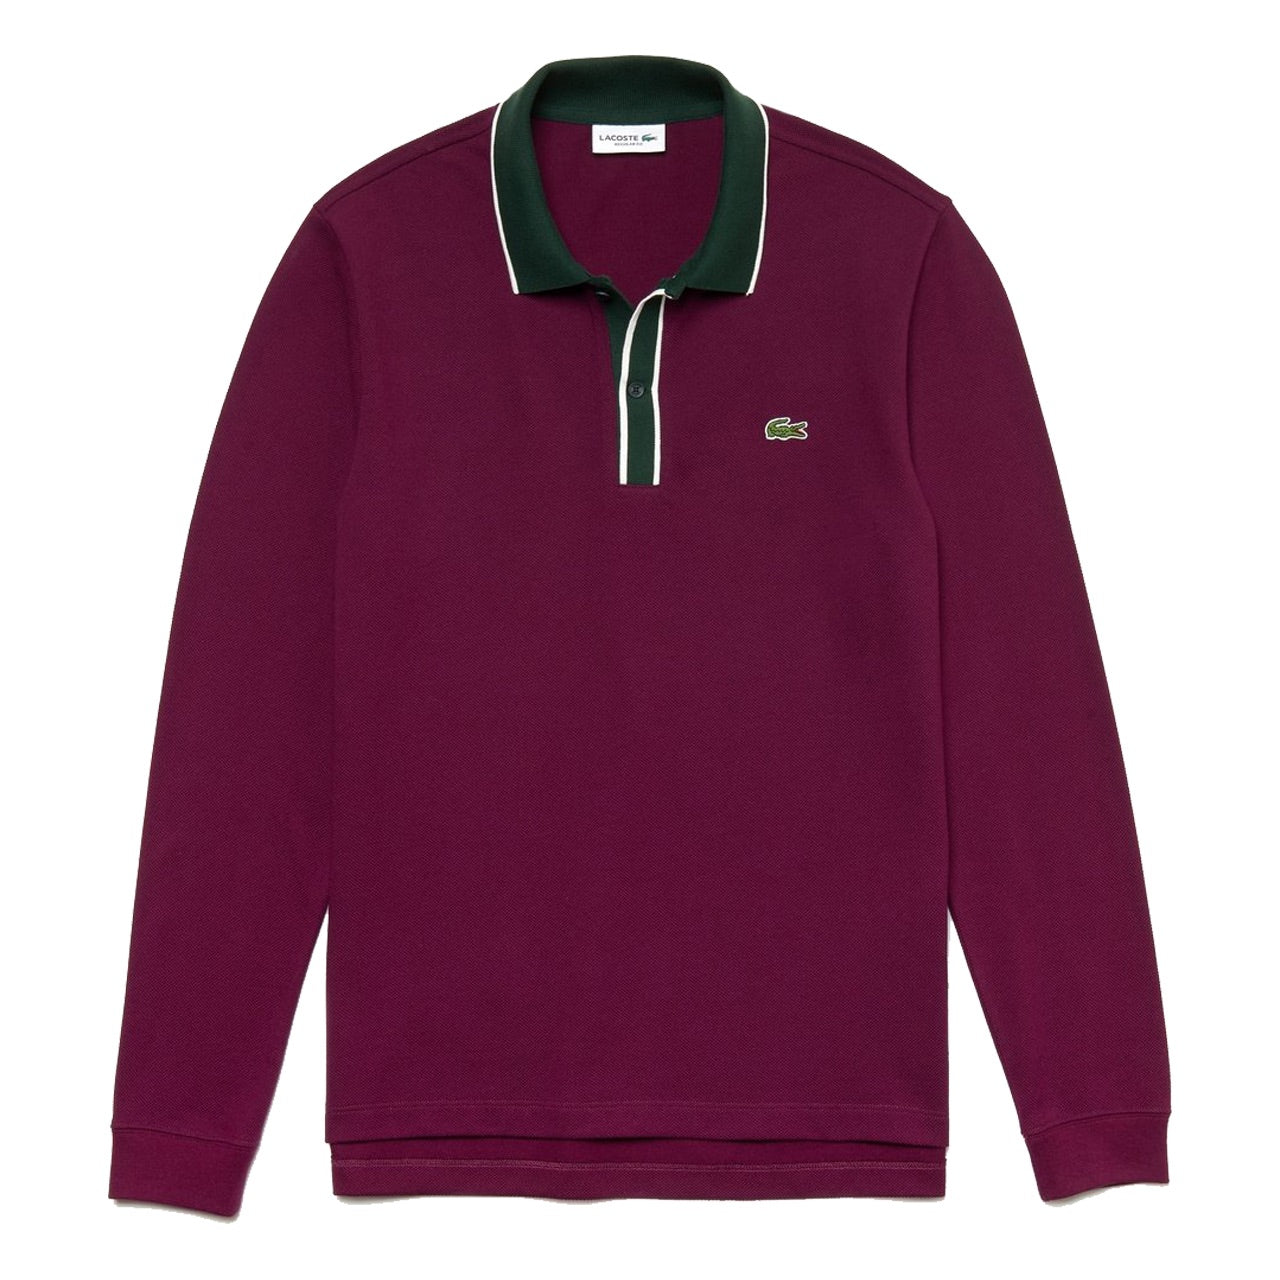 Lacoste Regular Fit Cotton Piqué Polo Shirt Bordeaux / White / Green • 3MT